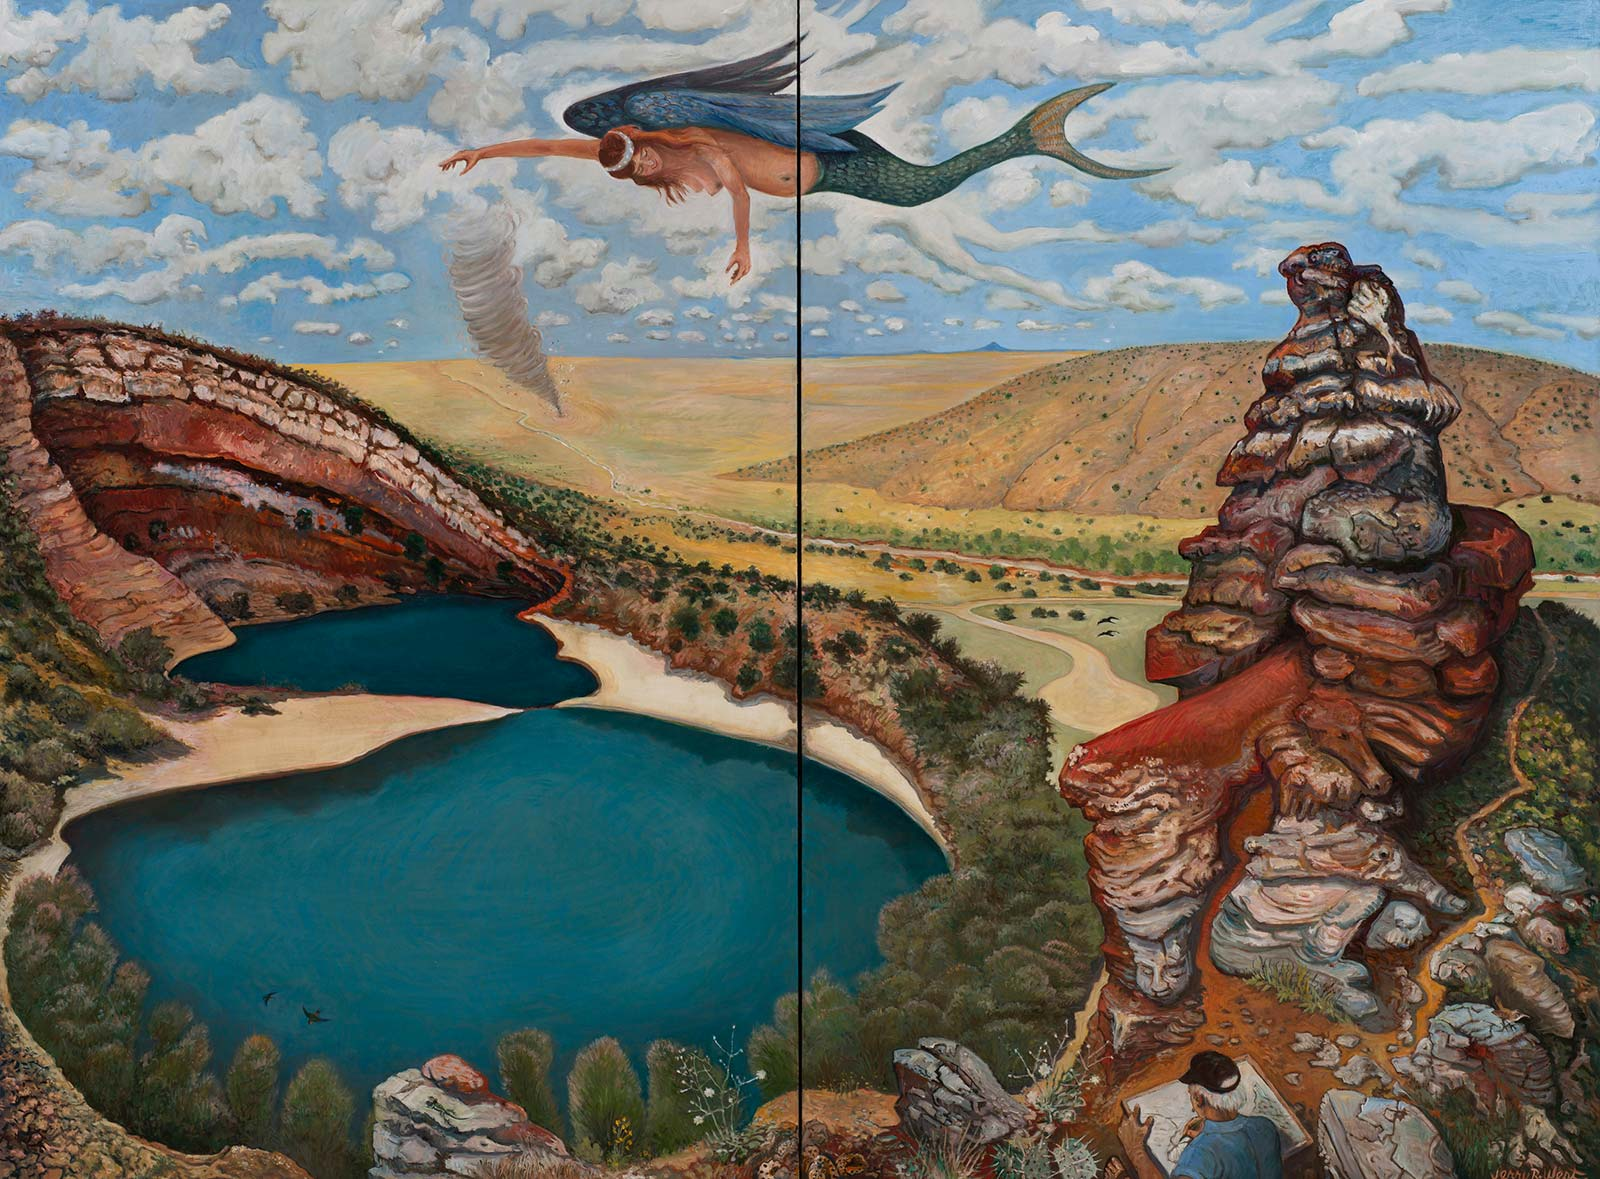 Painting by Jerry West, New Mexico